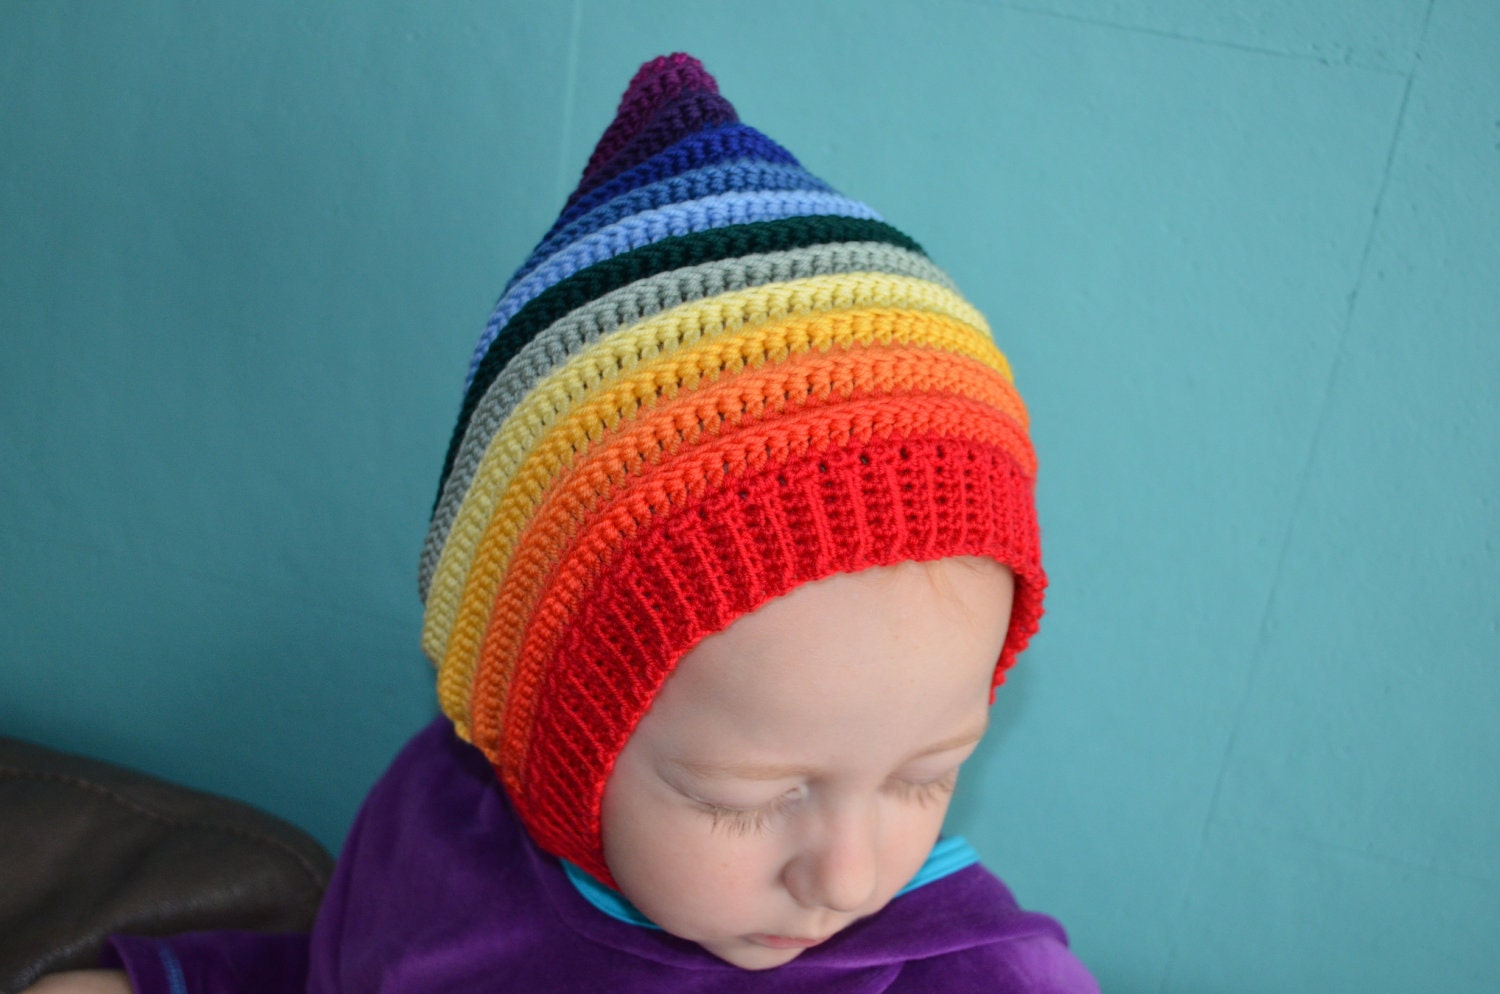 Crochet pattern : pixie-hat-with-scarf-in-one and pixie-hat